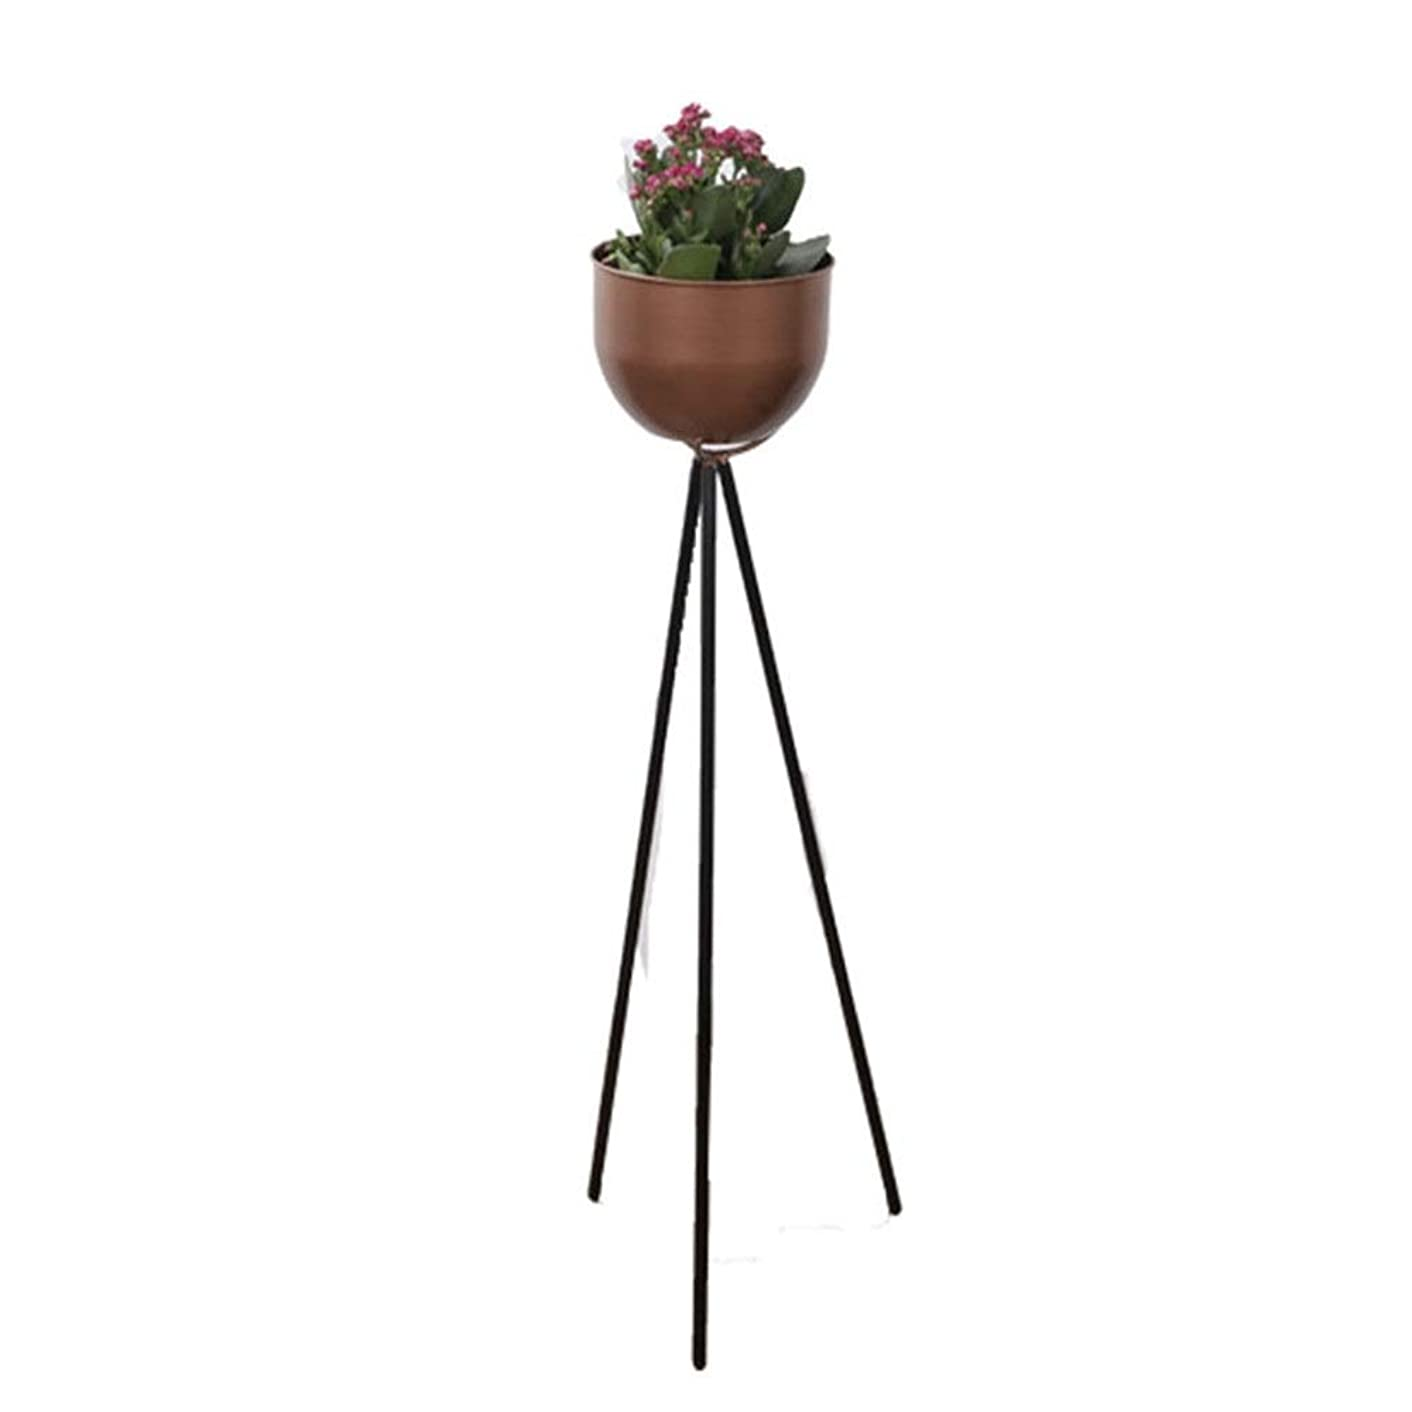 Sviper-home Plant Stand Flower Stand Nordic Iron Creative Floor Flower Stand Simple Practical Plant Potted Frame Indoor Living Room Balcony Racks Flower Pot Flower Display Stand